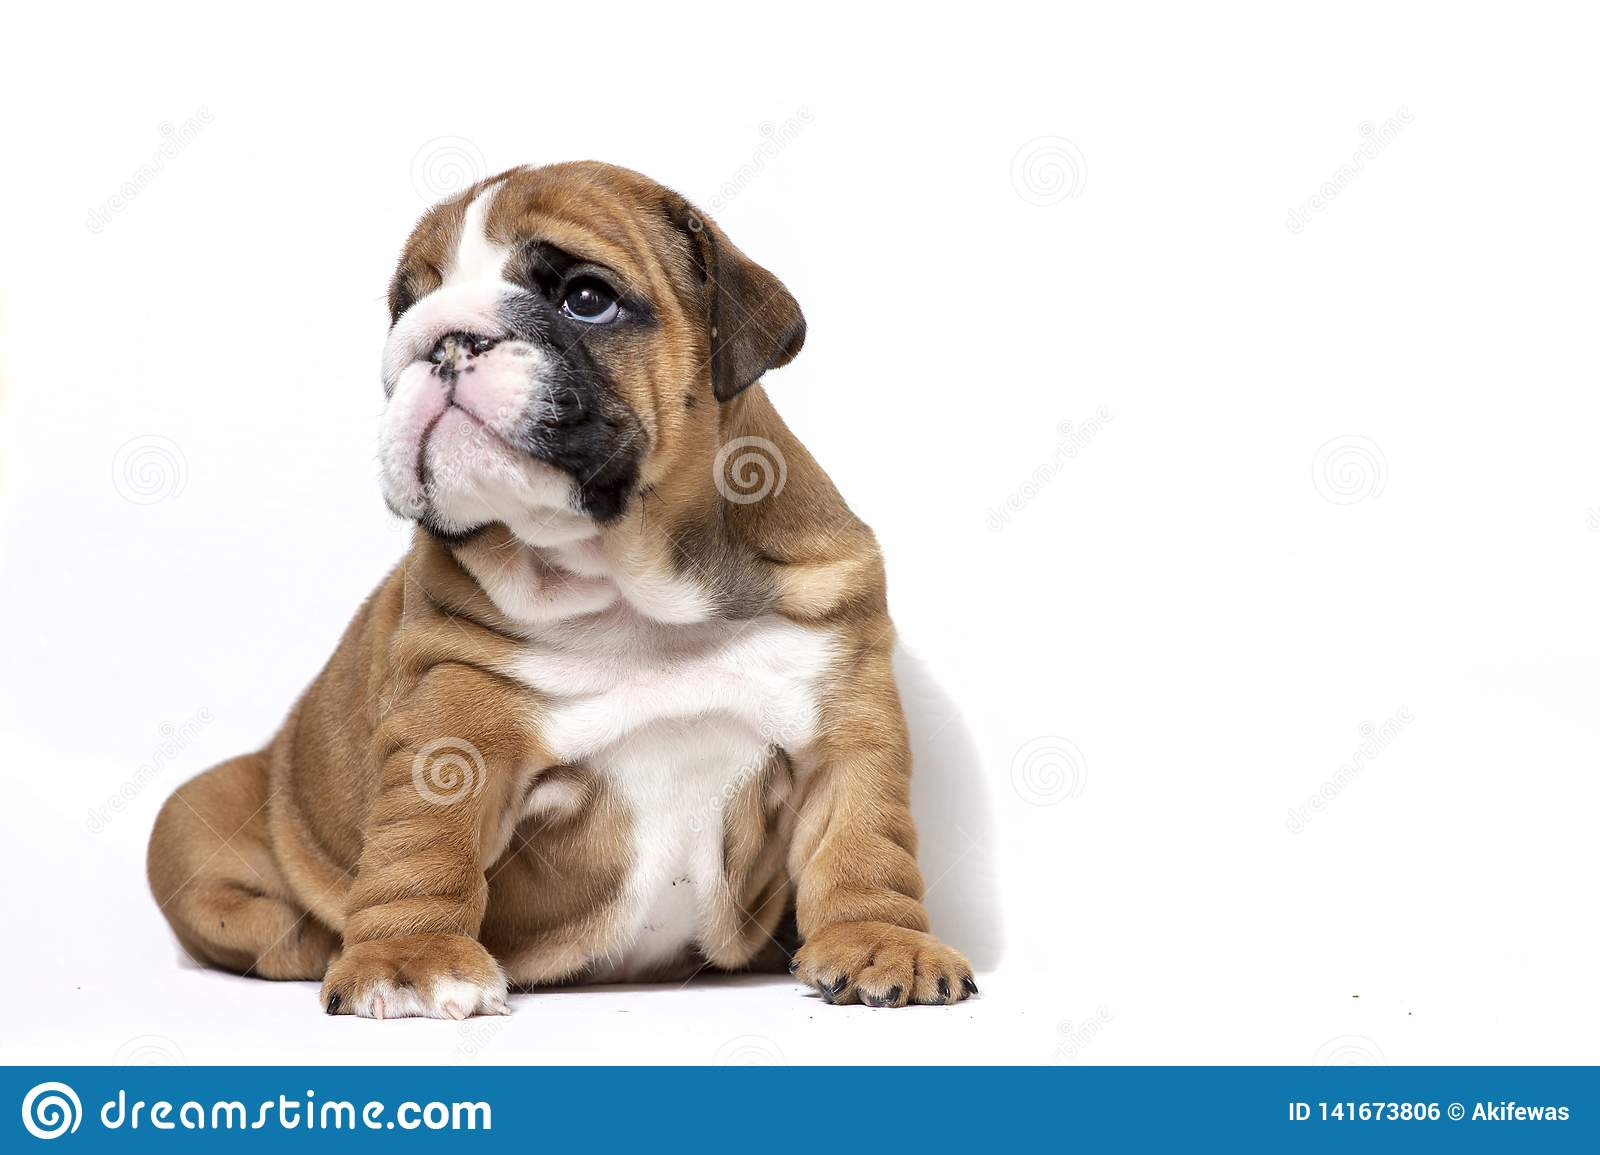 Puppy of English Bulldog on white background